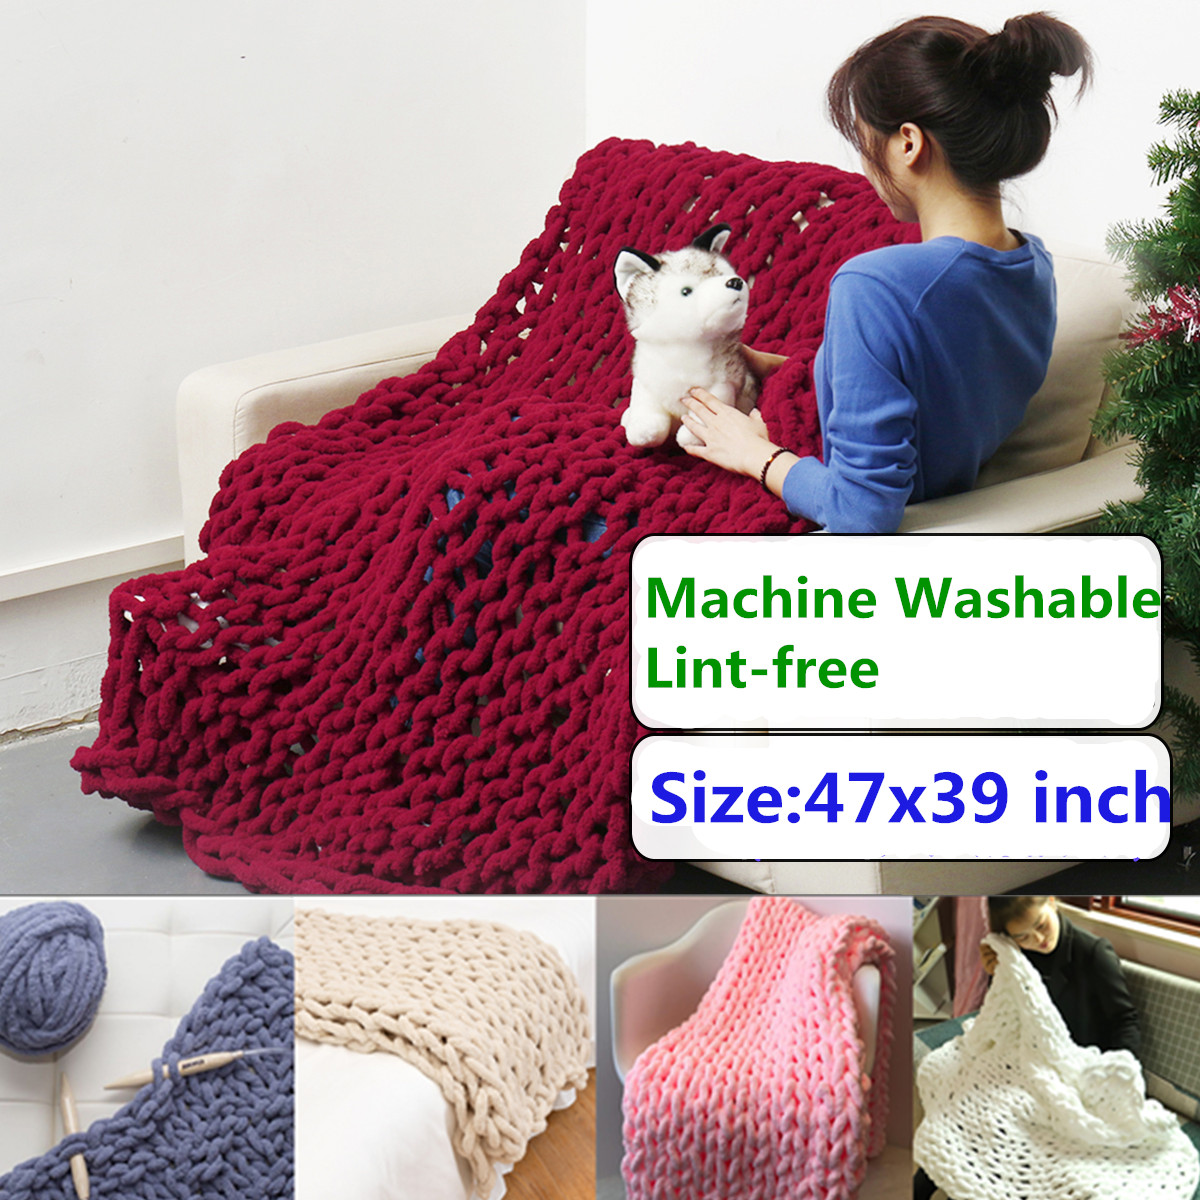 47''x39'' Hand-woven Soft Chunky Knitted Blanket Bulky Thick Yarn Bed Sofa Throw - Washable and Lint-free